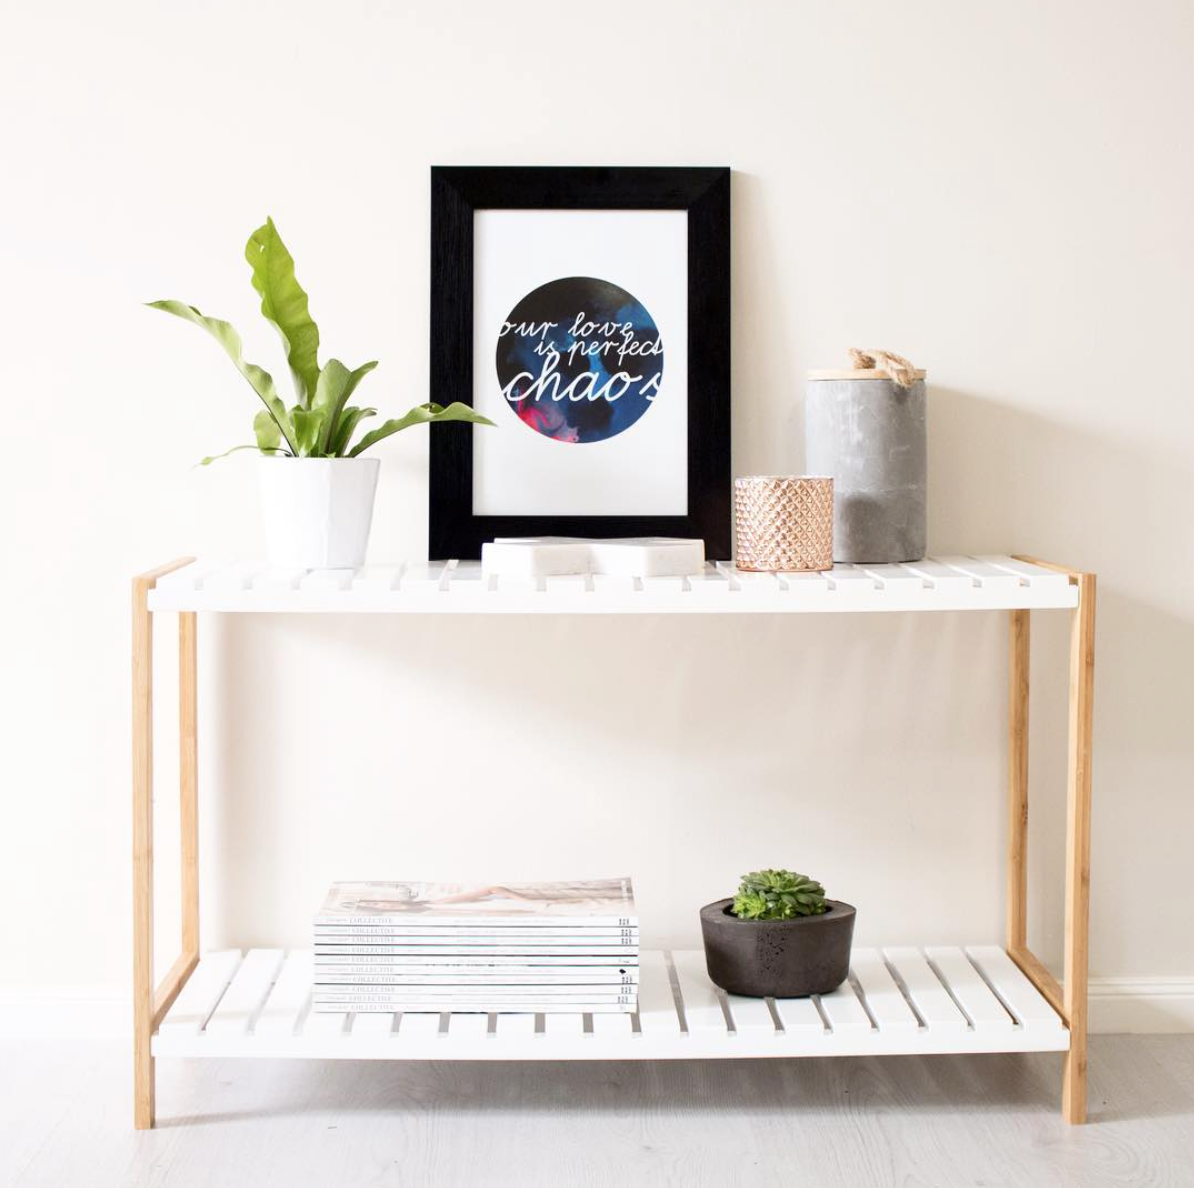 Product Styling & Photography  Artwork -  The Little Things Design  Concrete Planter -  Bayko Homewares  Stand -  Mocka Australia  Concrete Canister -  Pillow Talk  Copper Candle - Ara & Co.